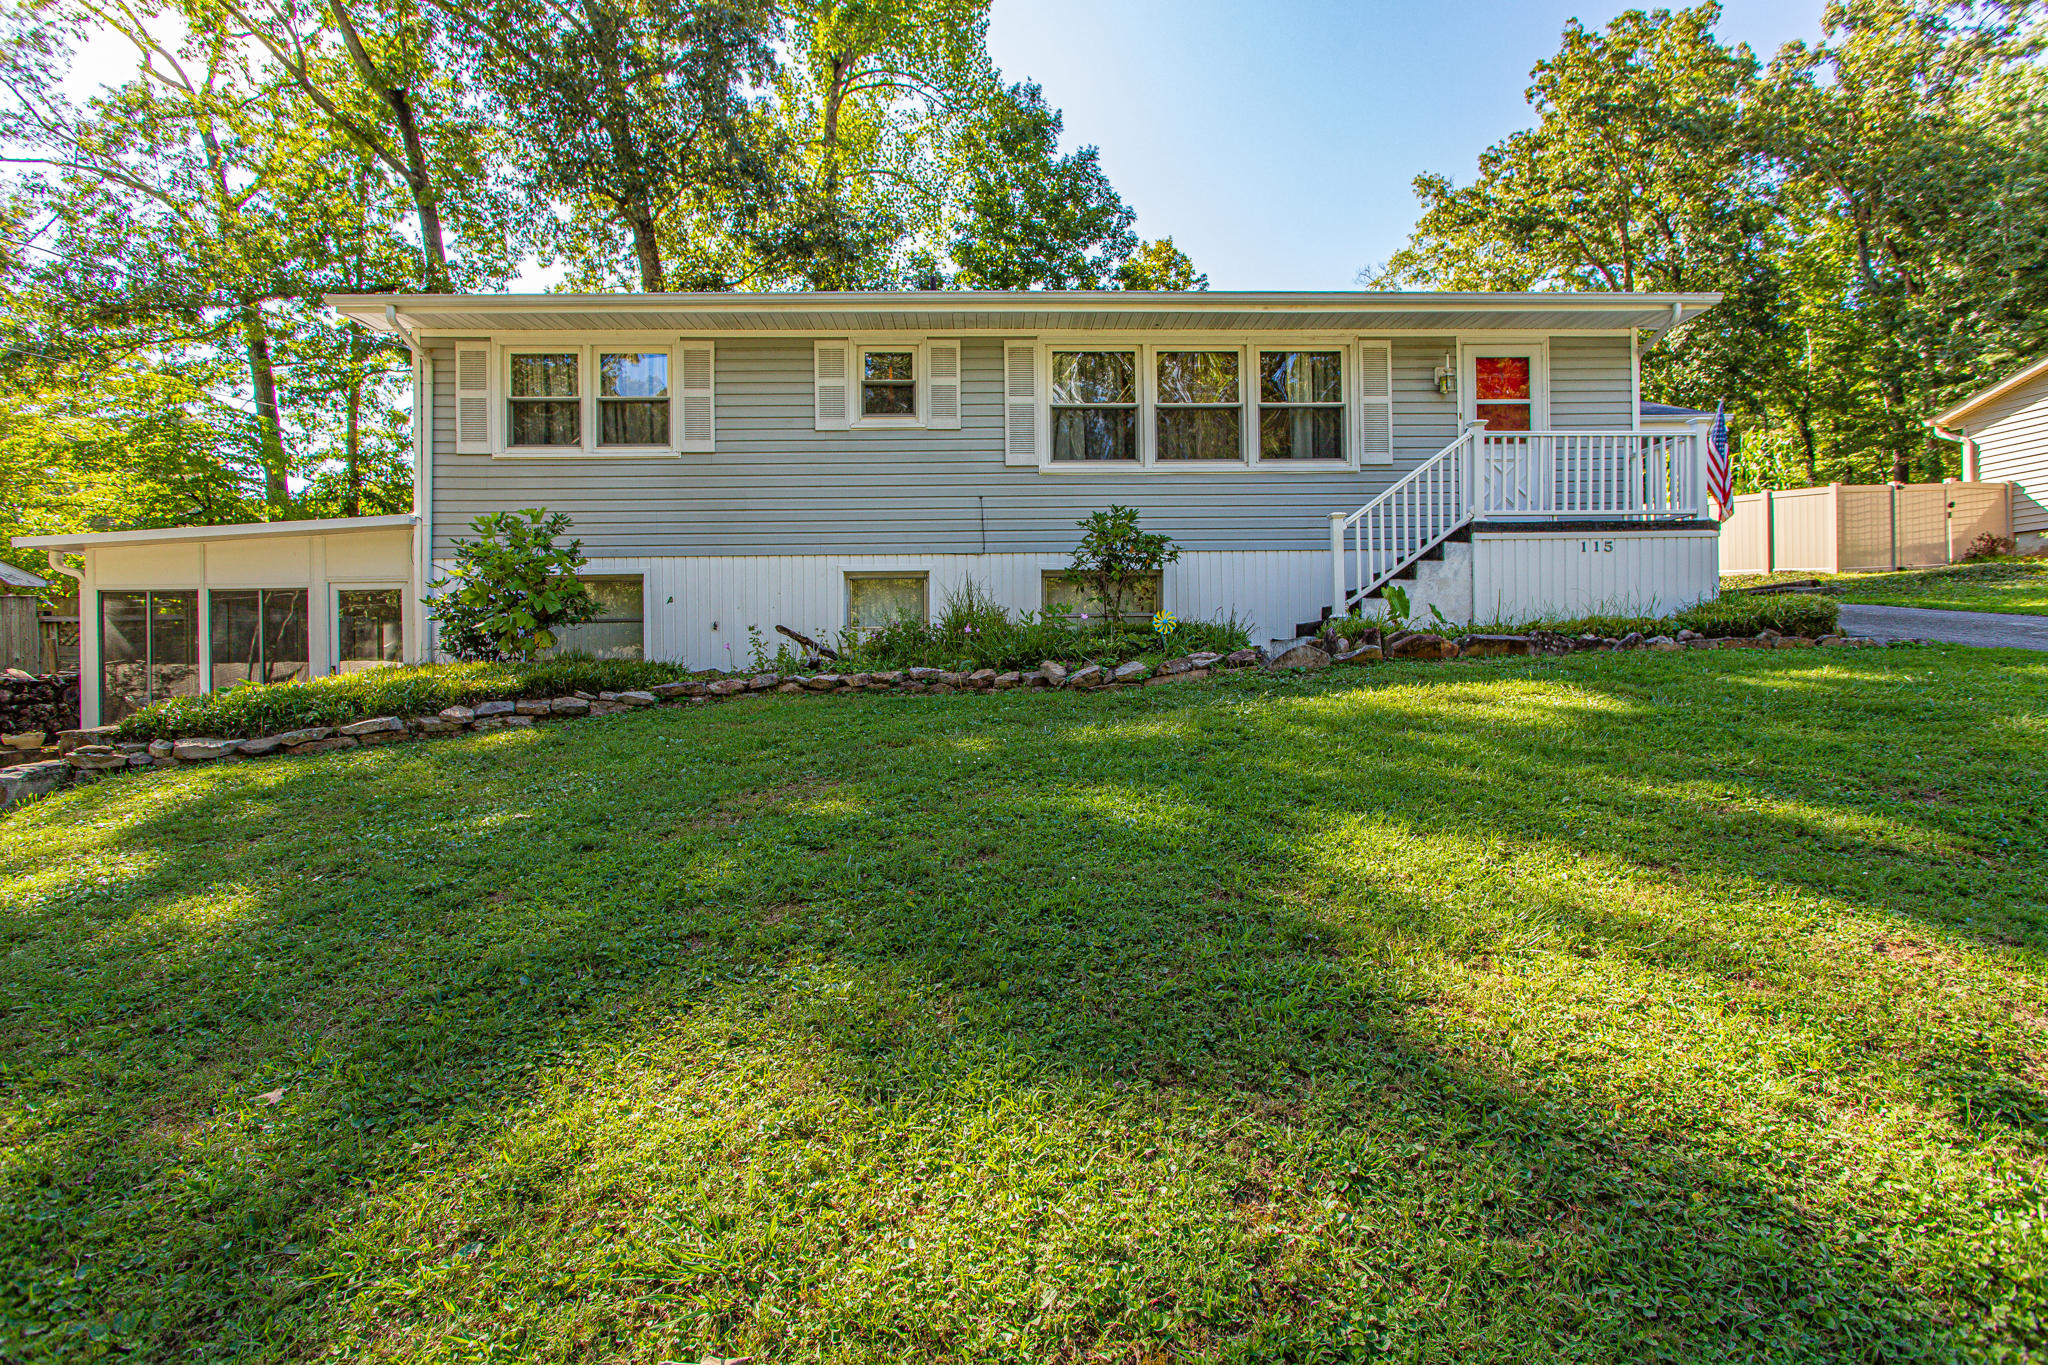 115 Irving, Oak Ridge, Tennessee, United States 37830, 4 Bedrooms Bedrooms, ,2 BathroomsBathrooms,Single Family,For Sale,Irving,1126369